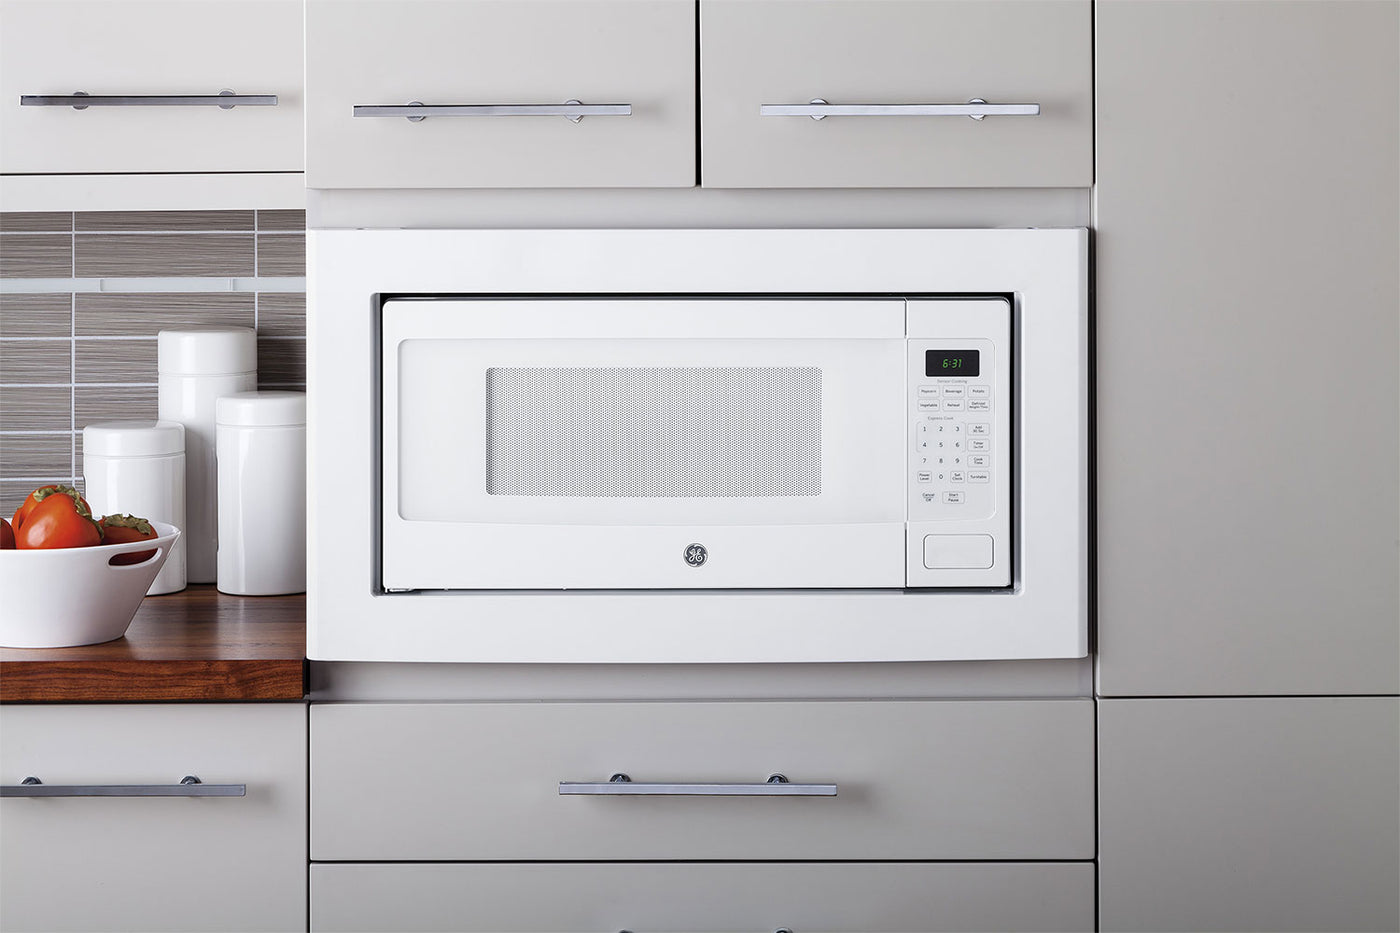 Ge 30 Quot Built In Microwave Trim Kit Jx830wfc The Brick